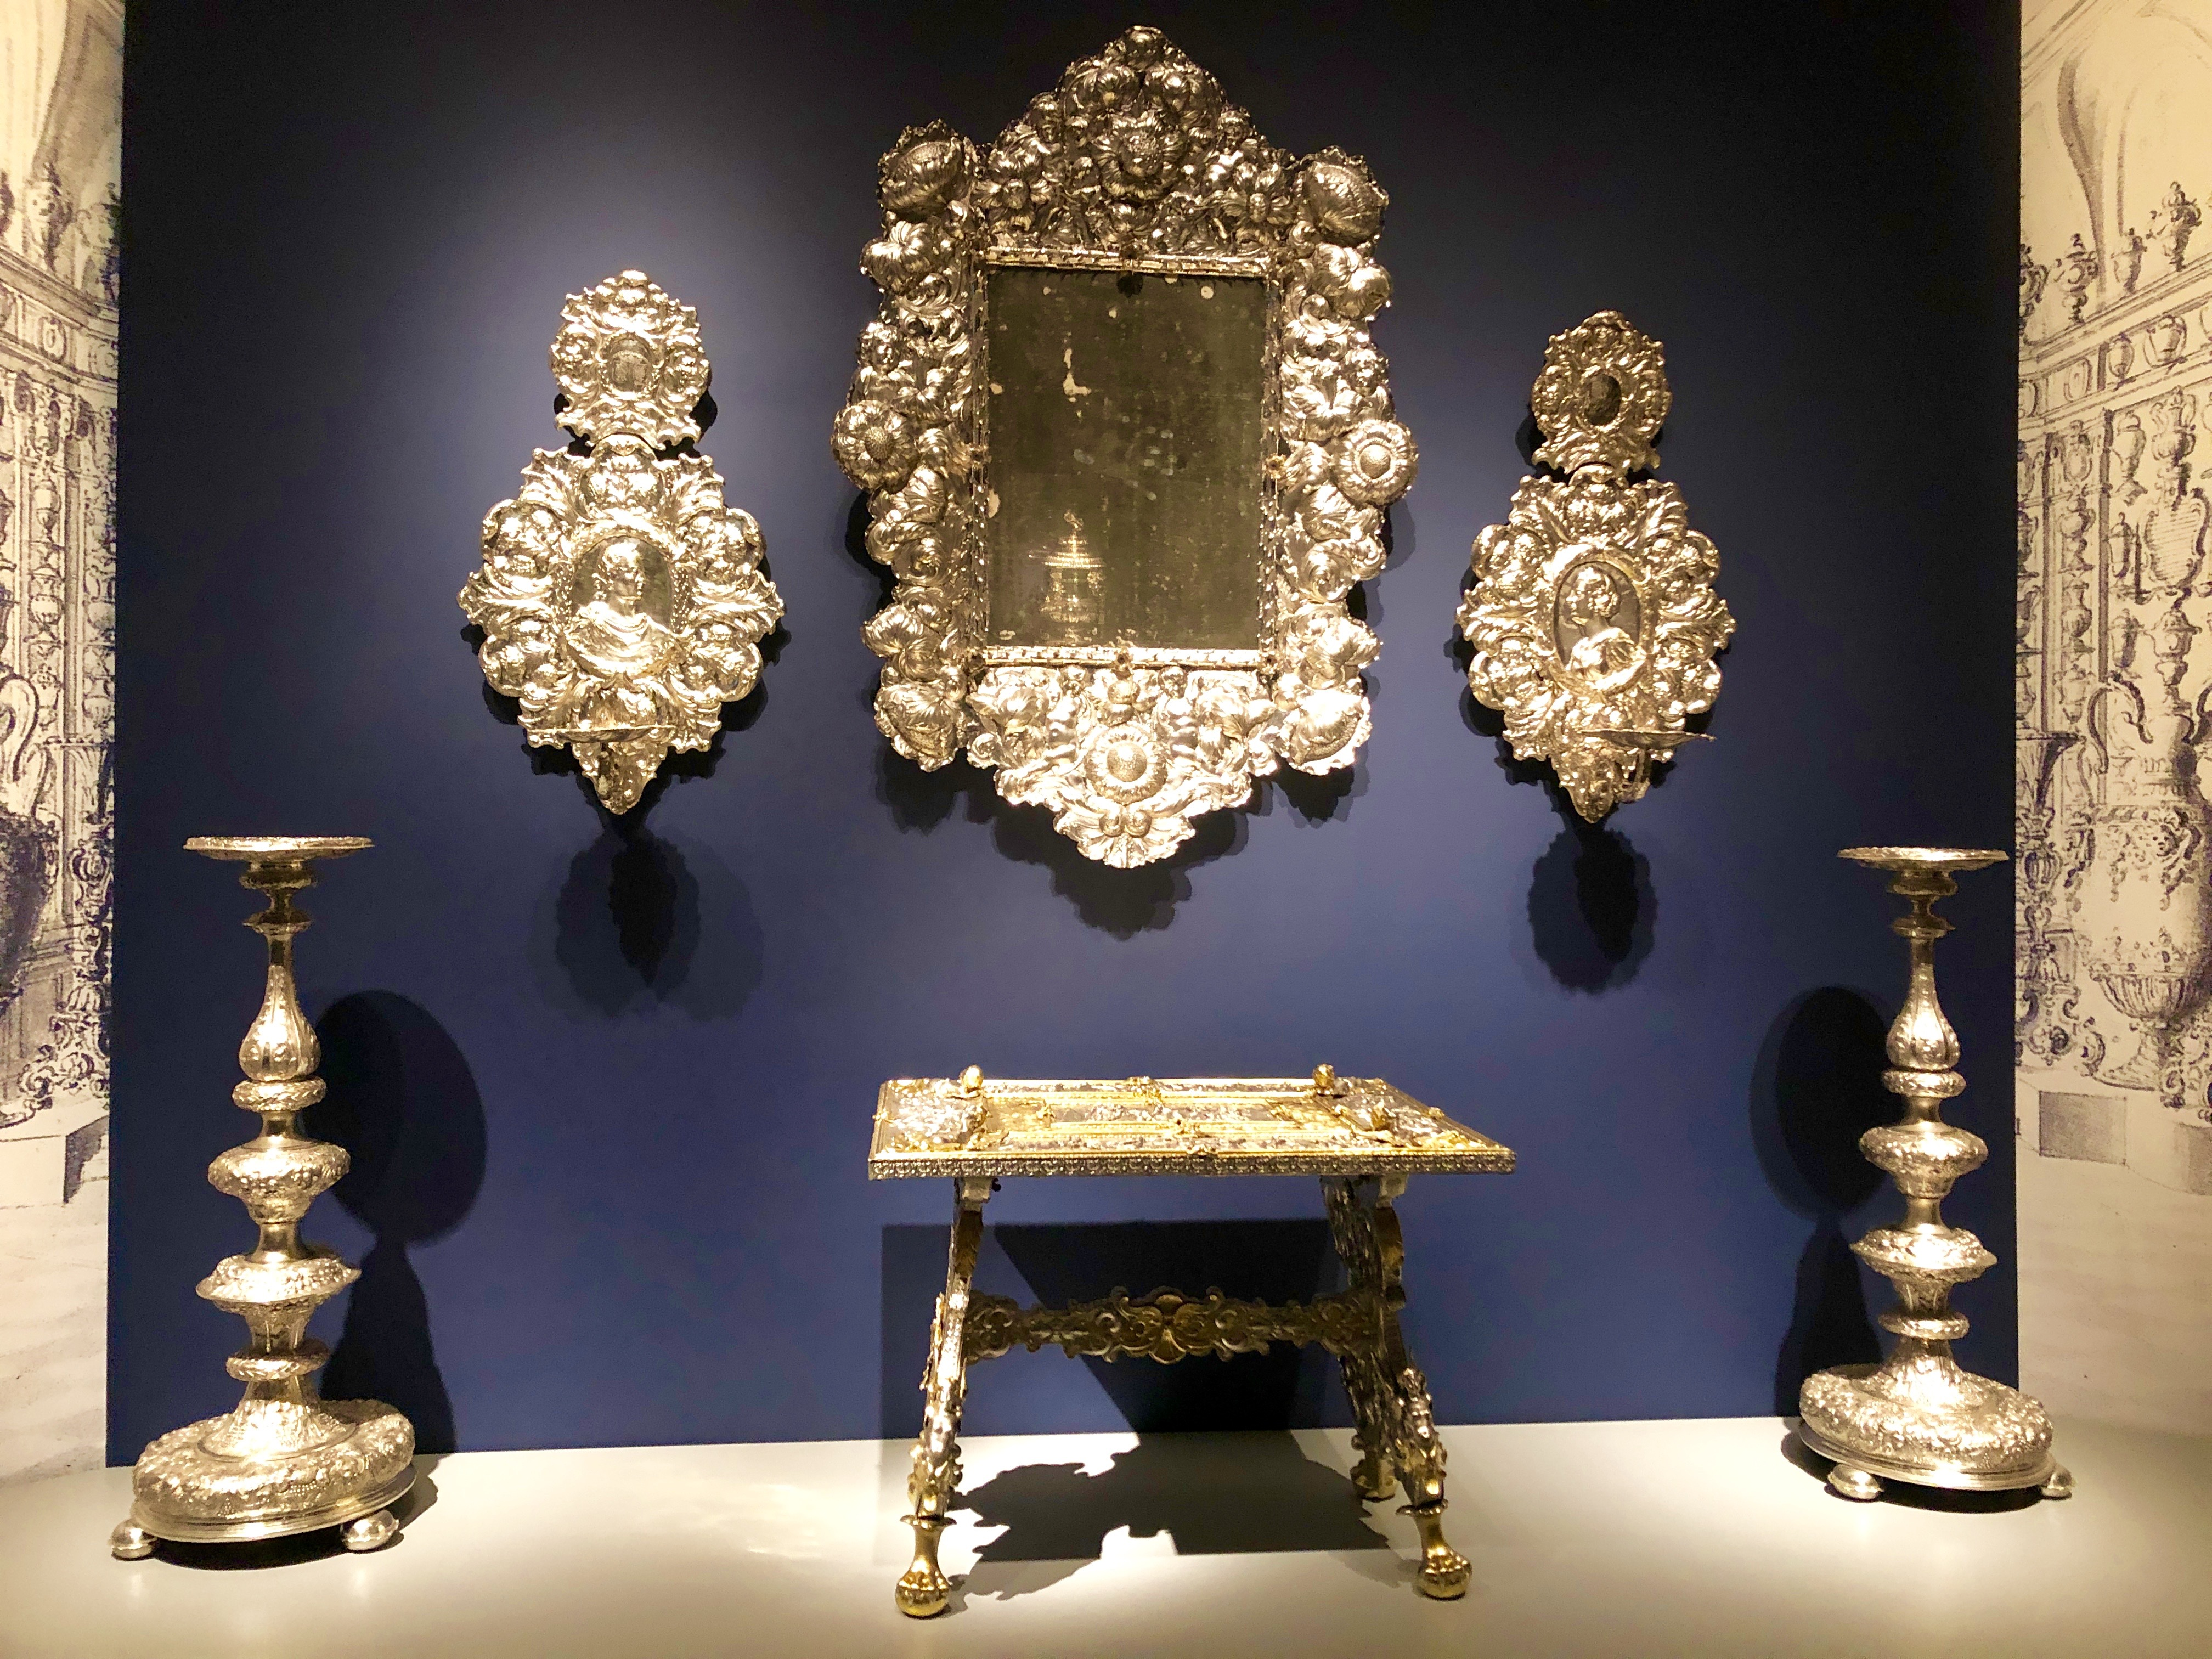 Making Marvels: Science and Splendor at the Courts of Europe at the Metropolitan Museum of Art